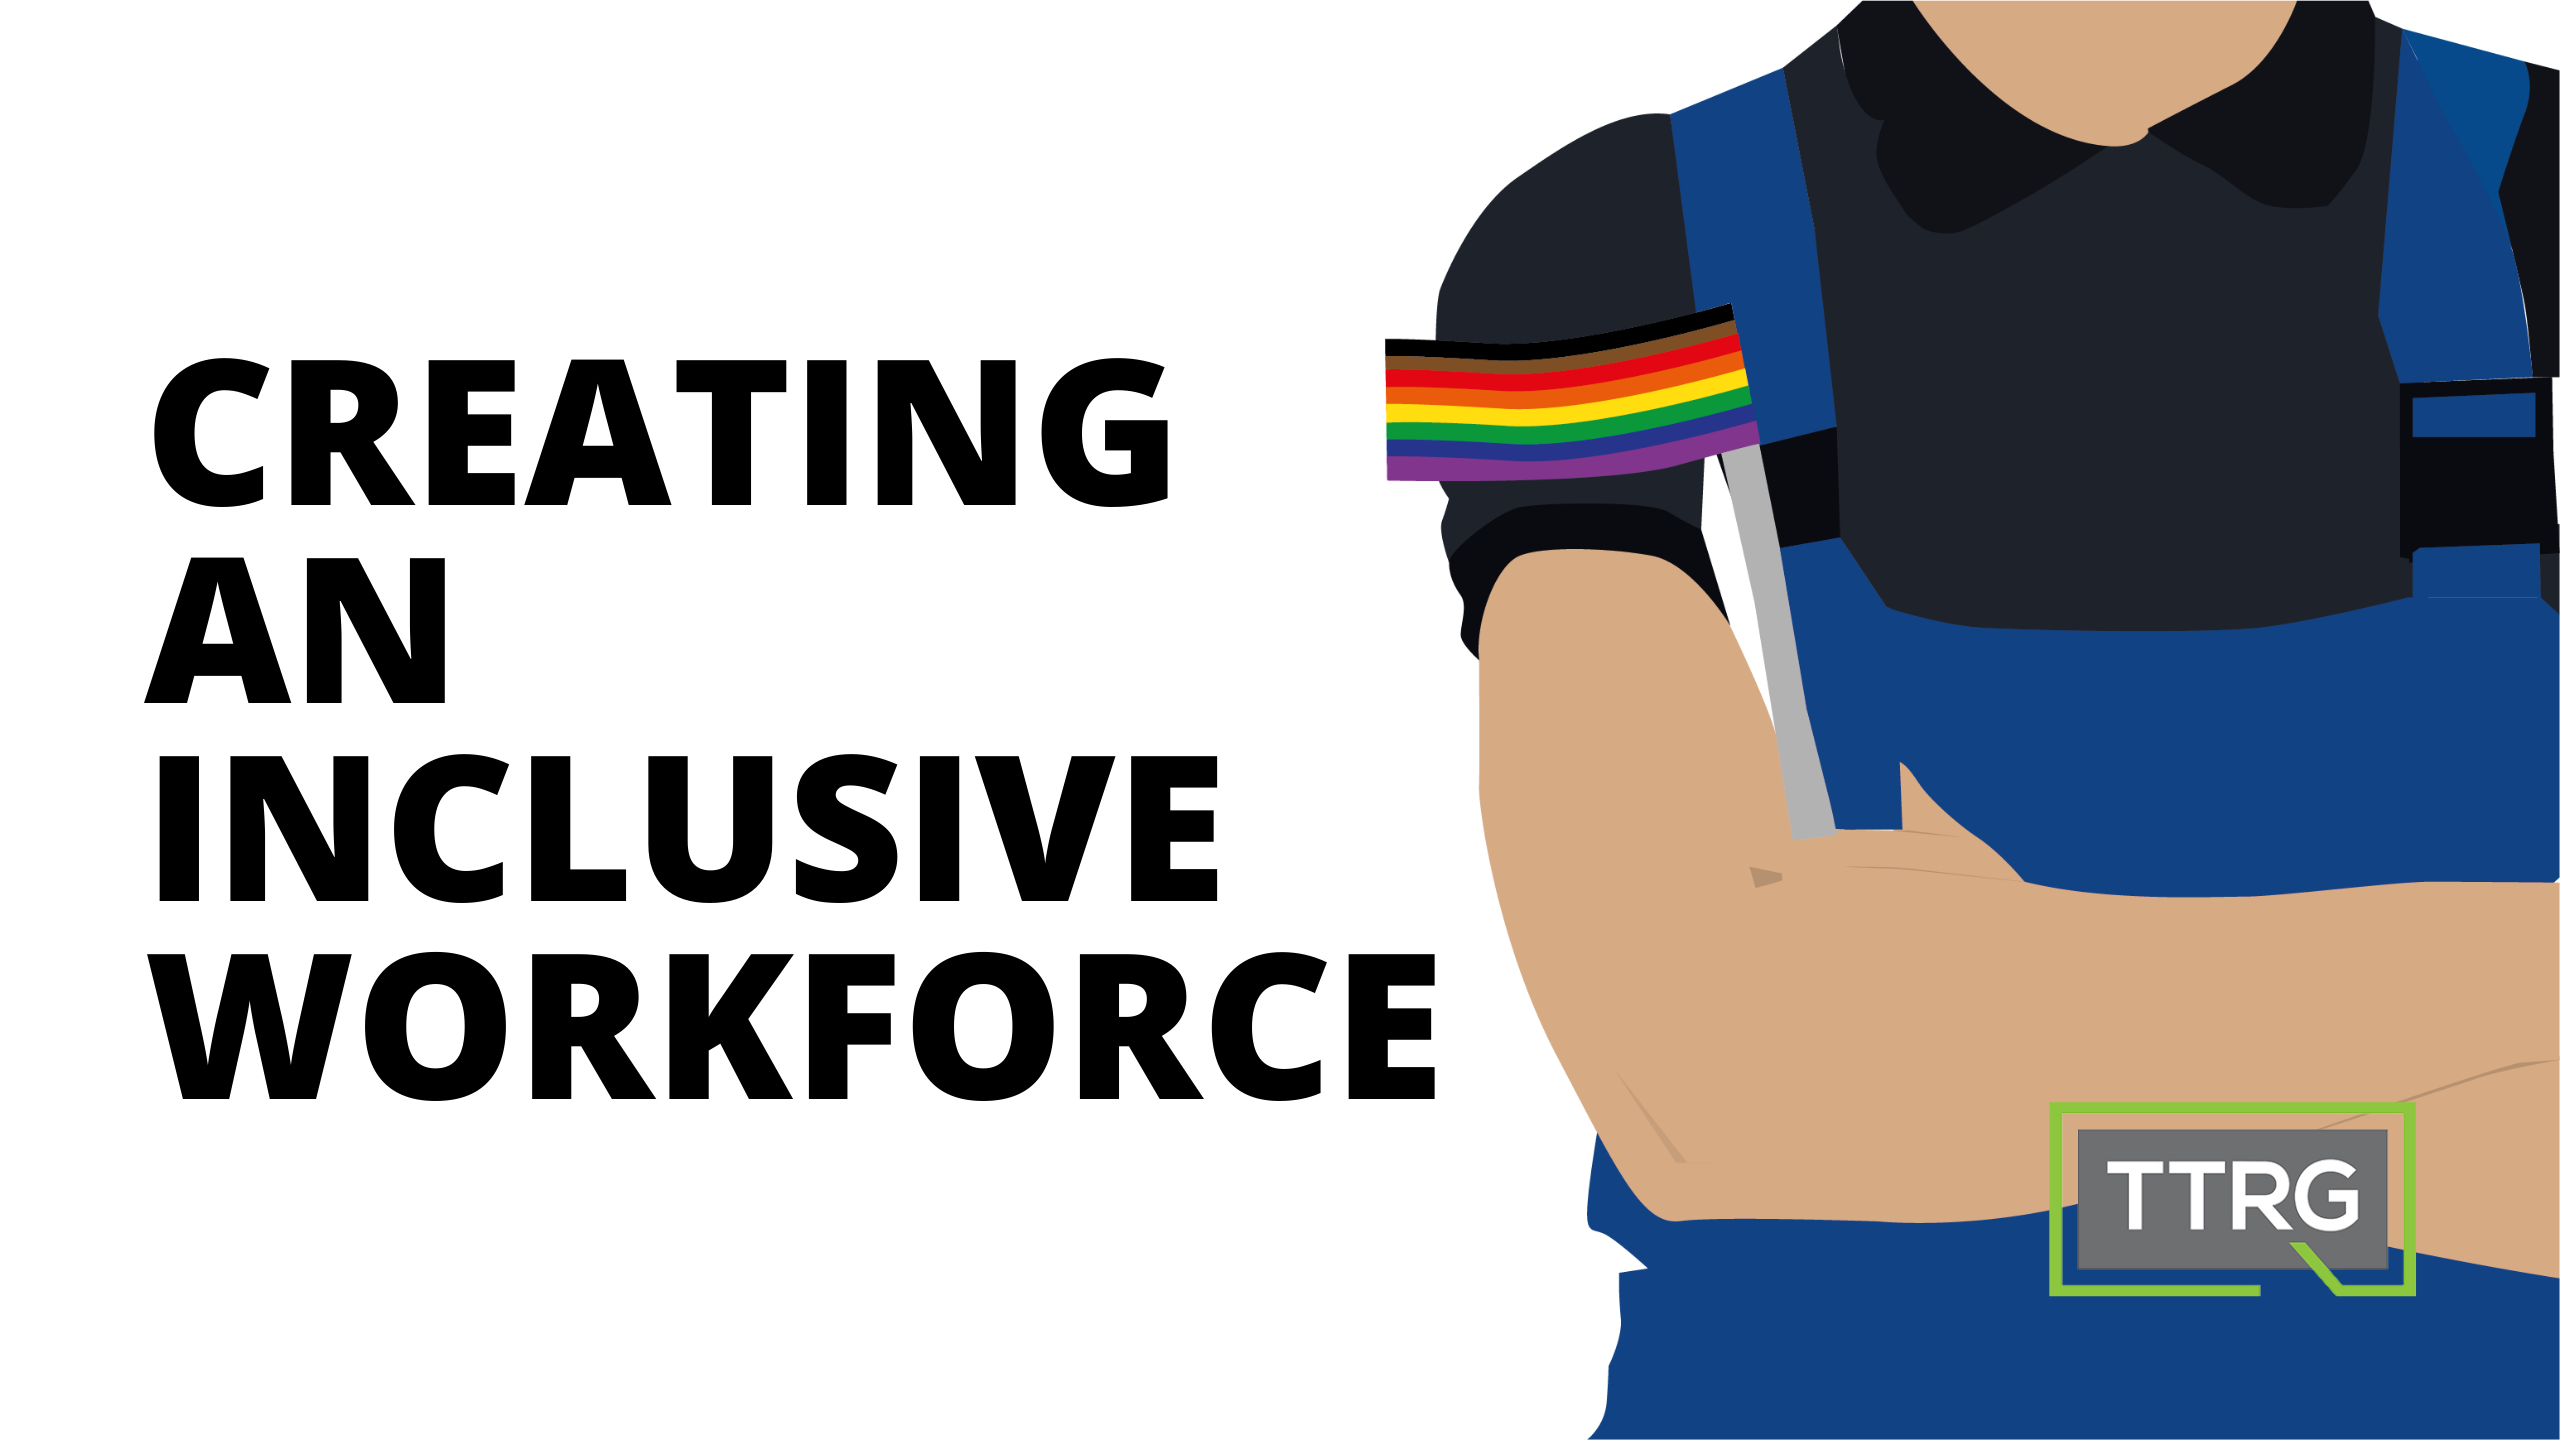 Creating an inclusive workforce